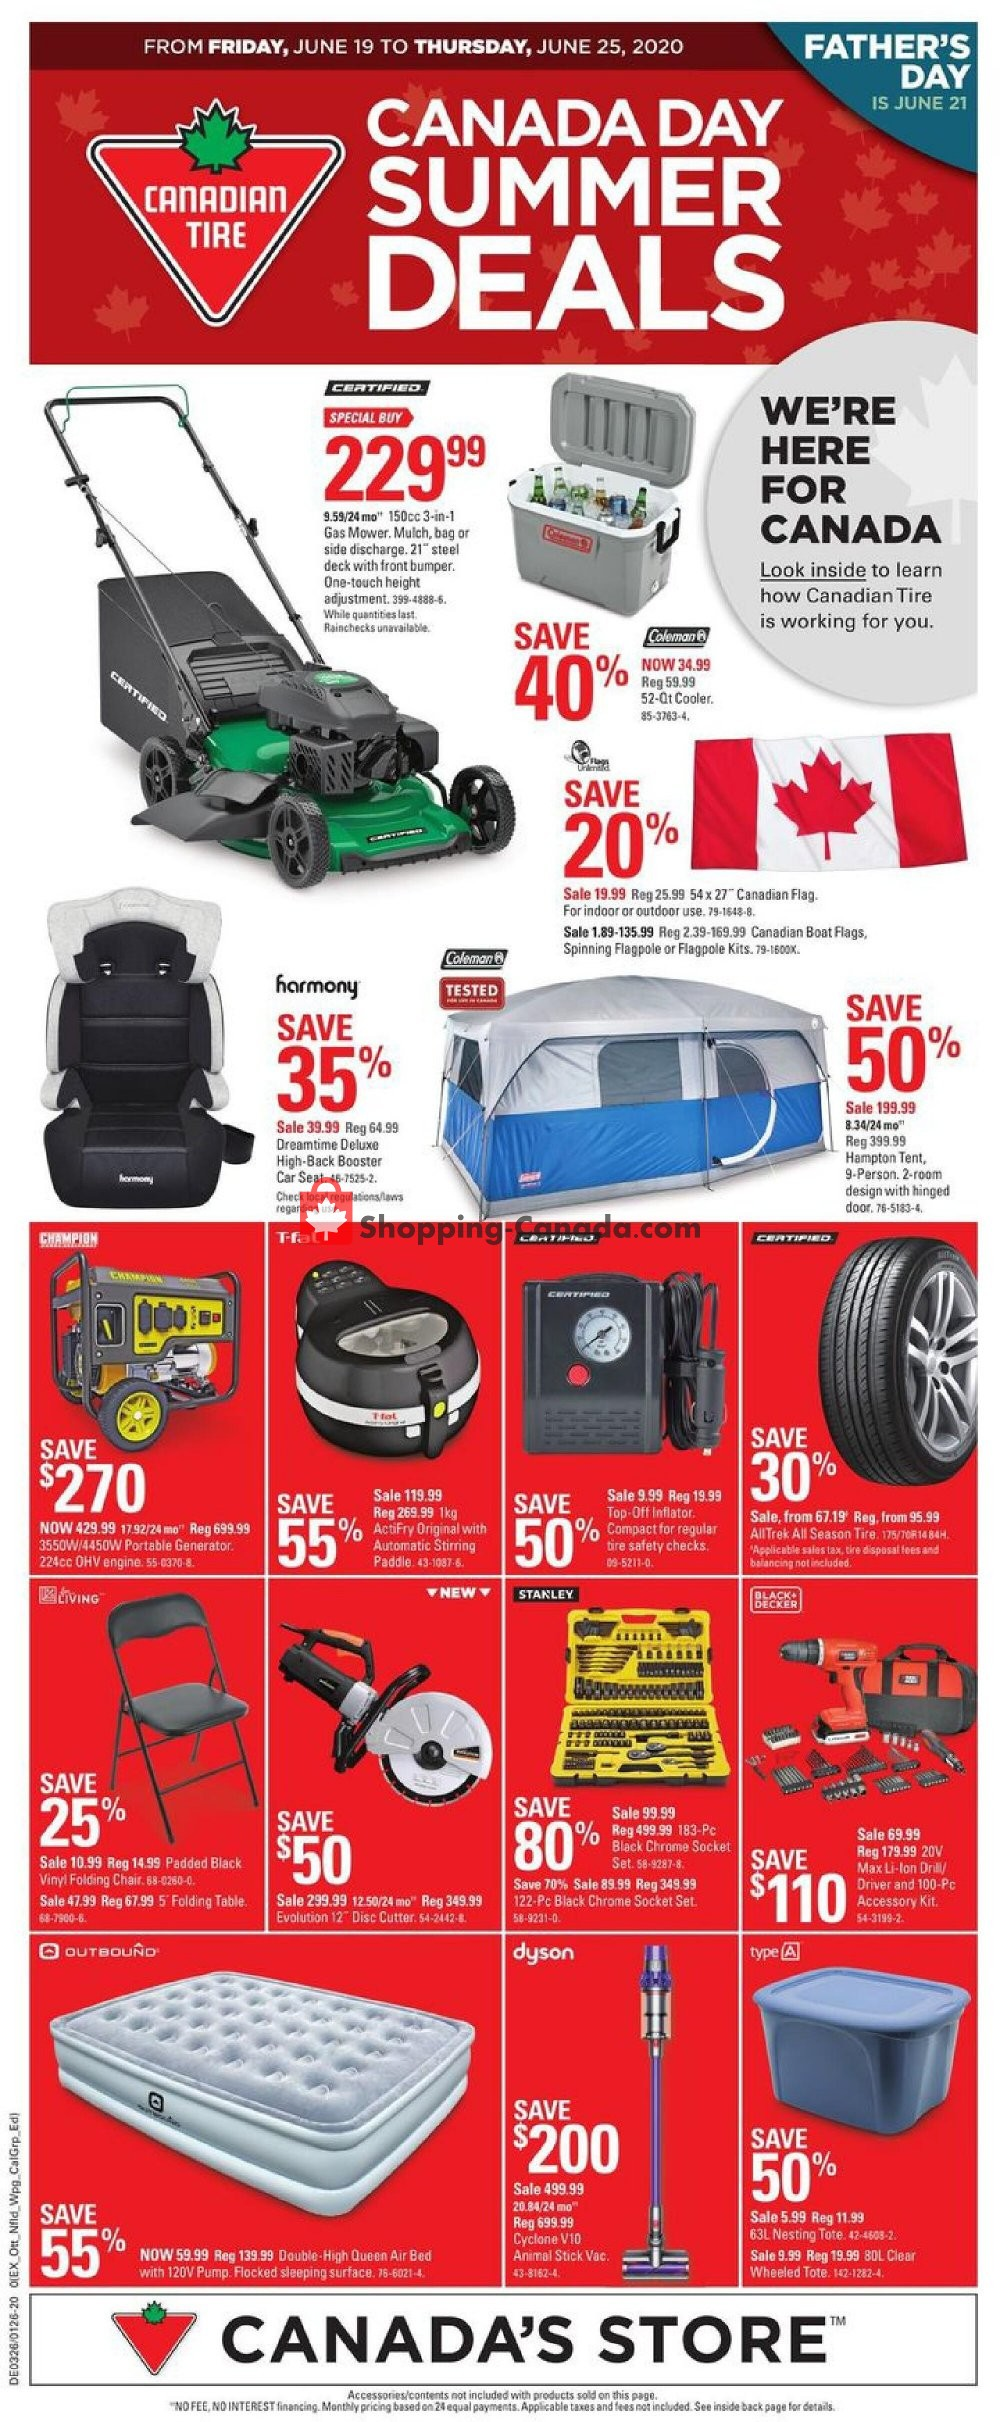 Canadian Tire Canada Flyer Canada Day Summer Deals On June 19 June 25 2020 Shopping Canada